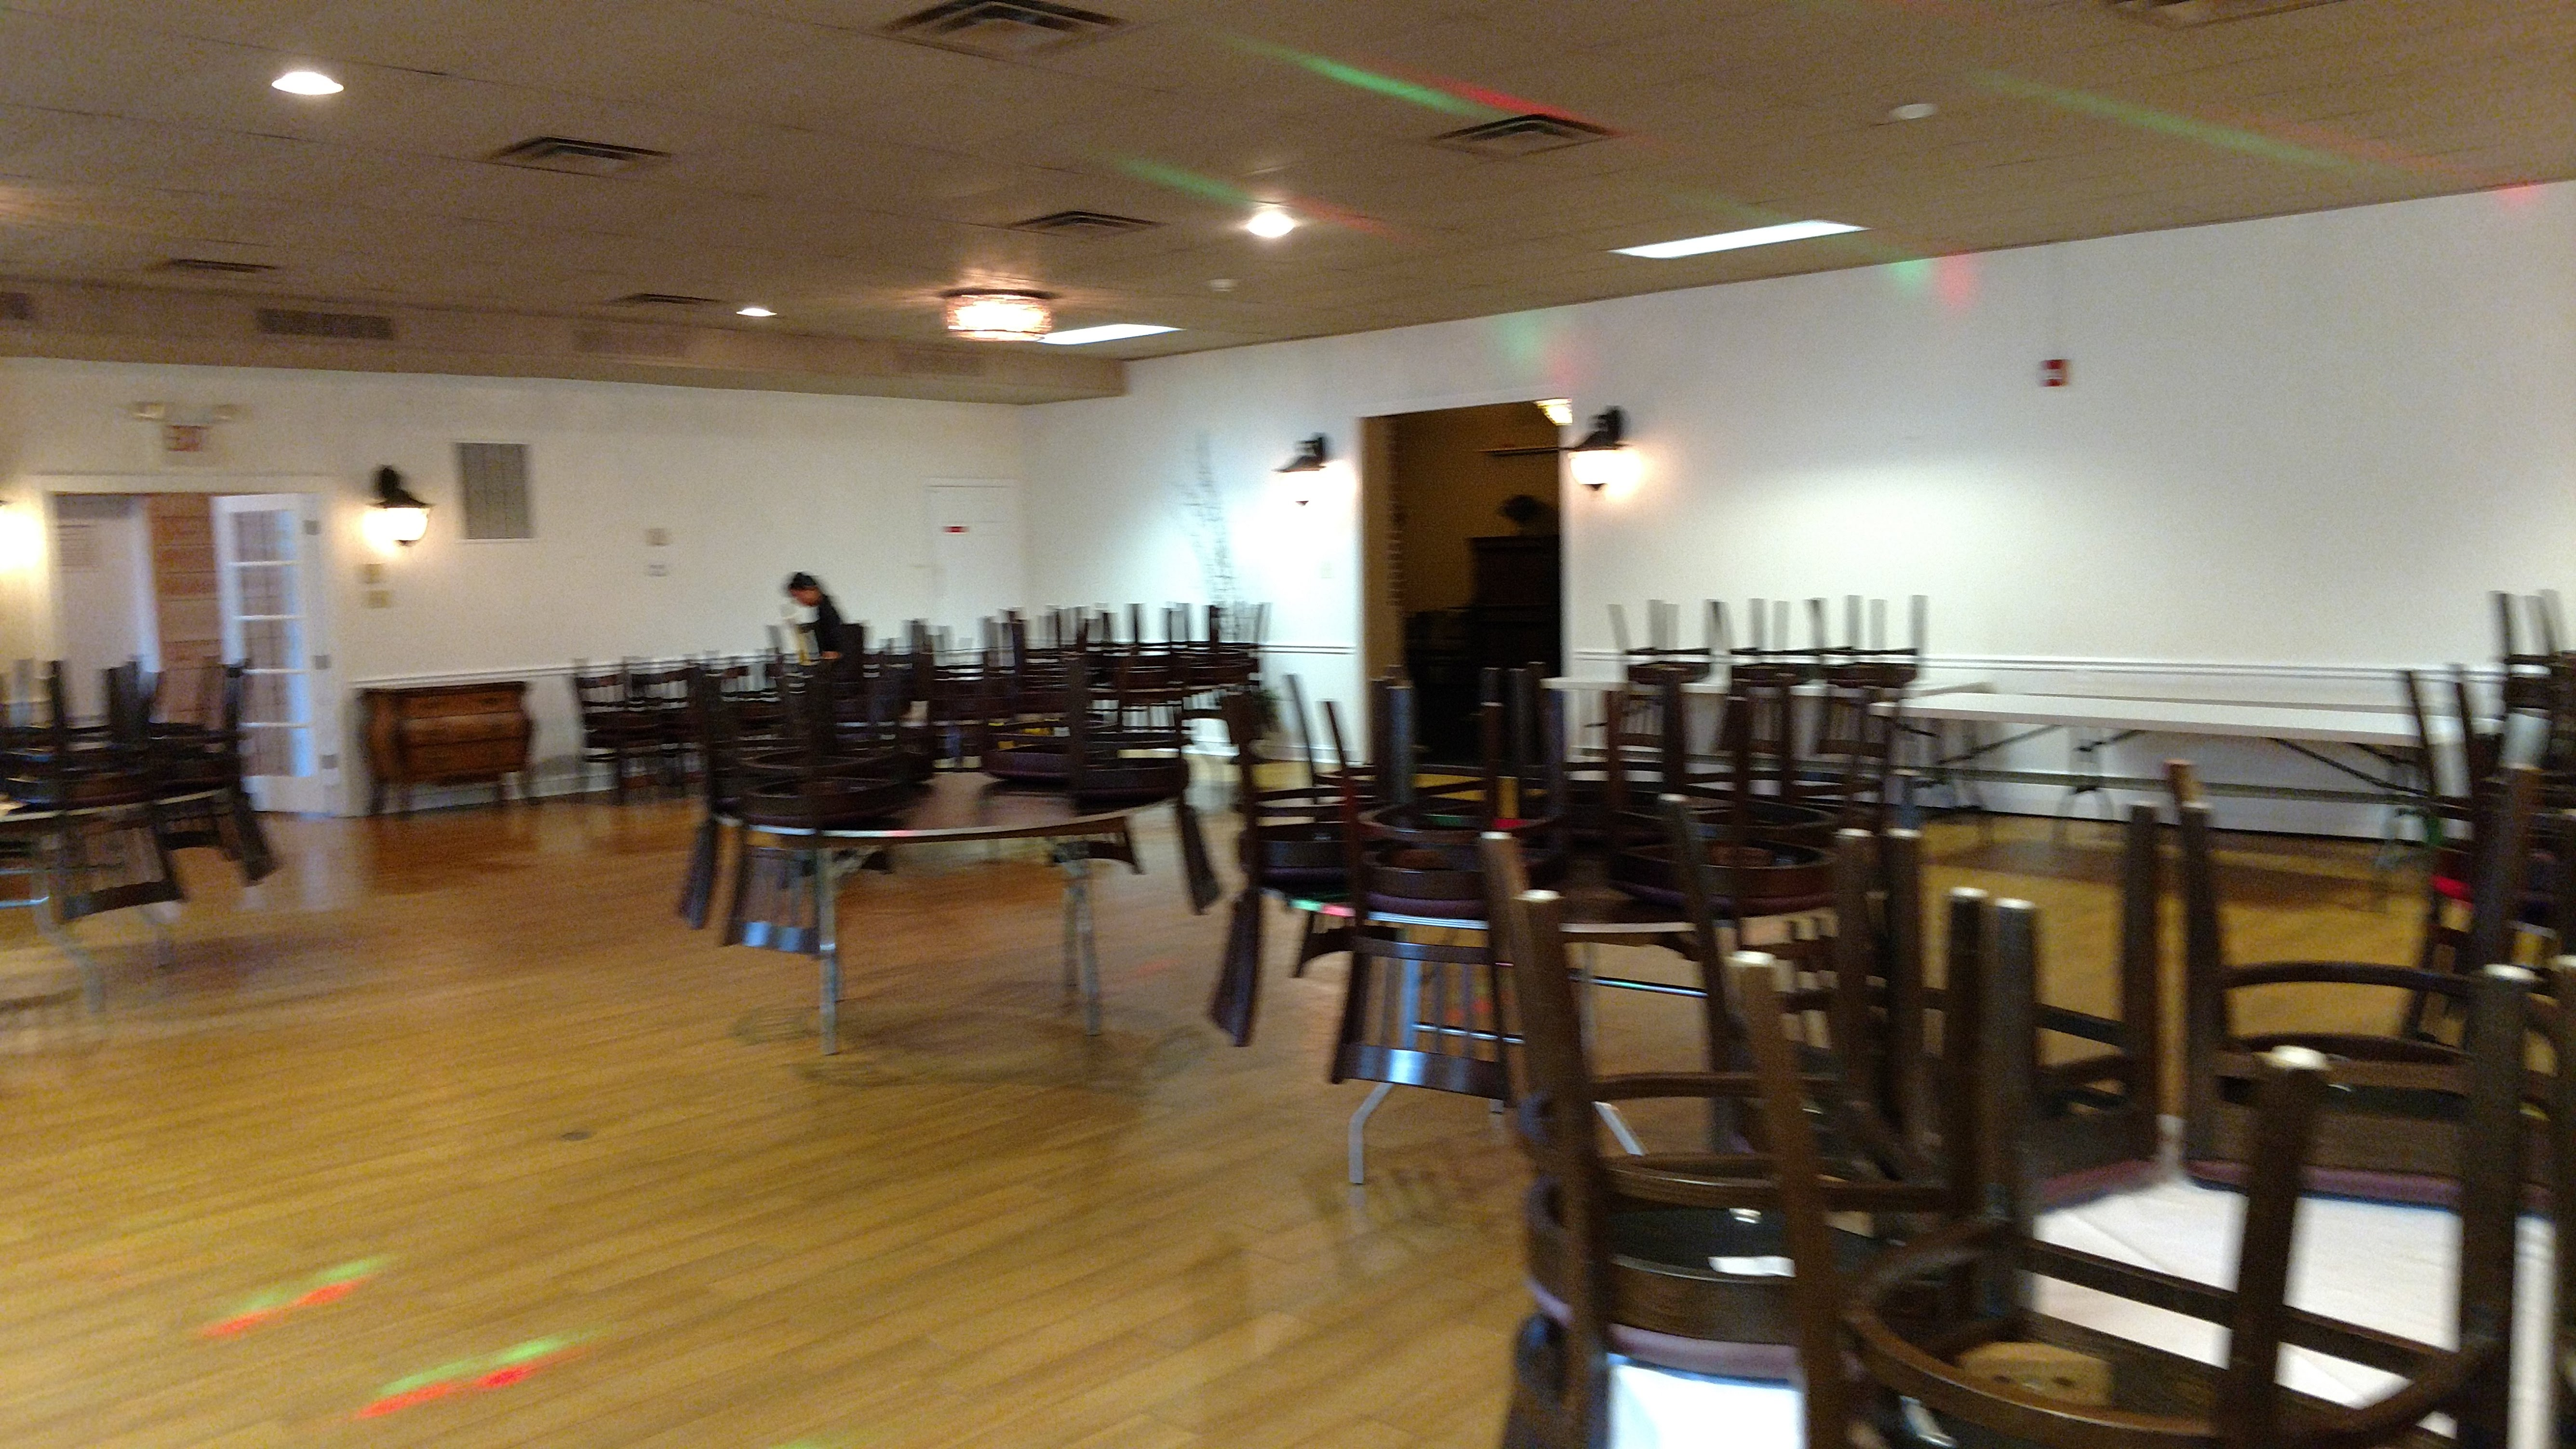 Air Conditioner Rental >> Spring Valley Banquet Facility Hall Rentals in Springfield, PA